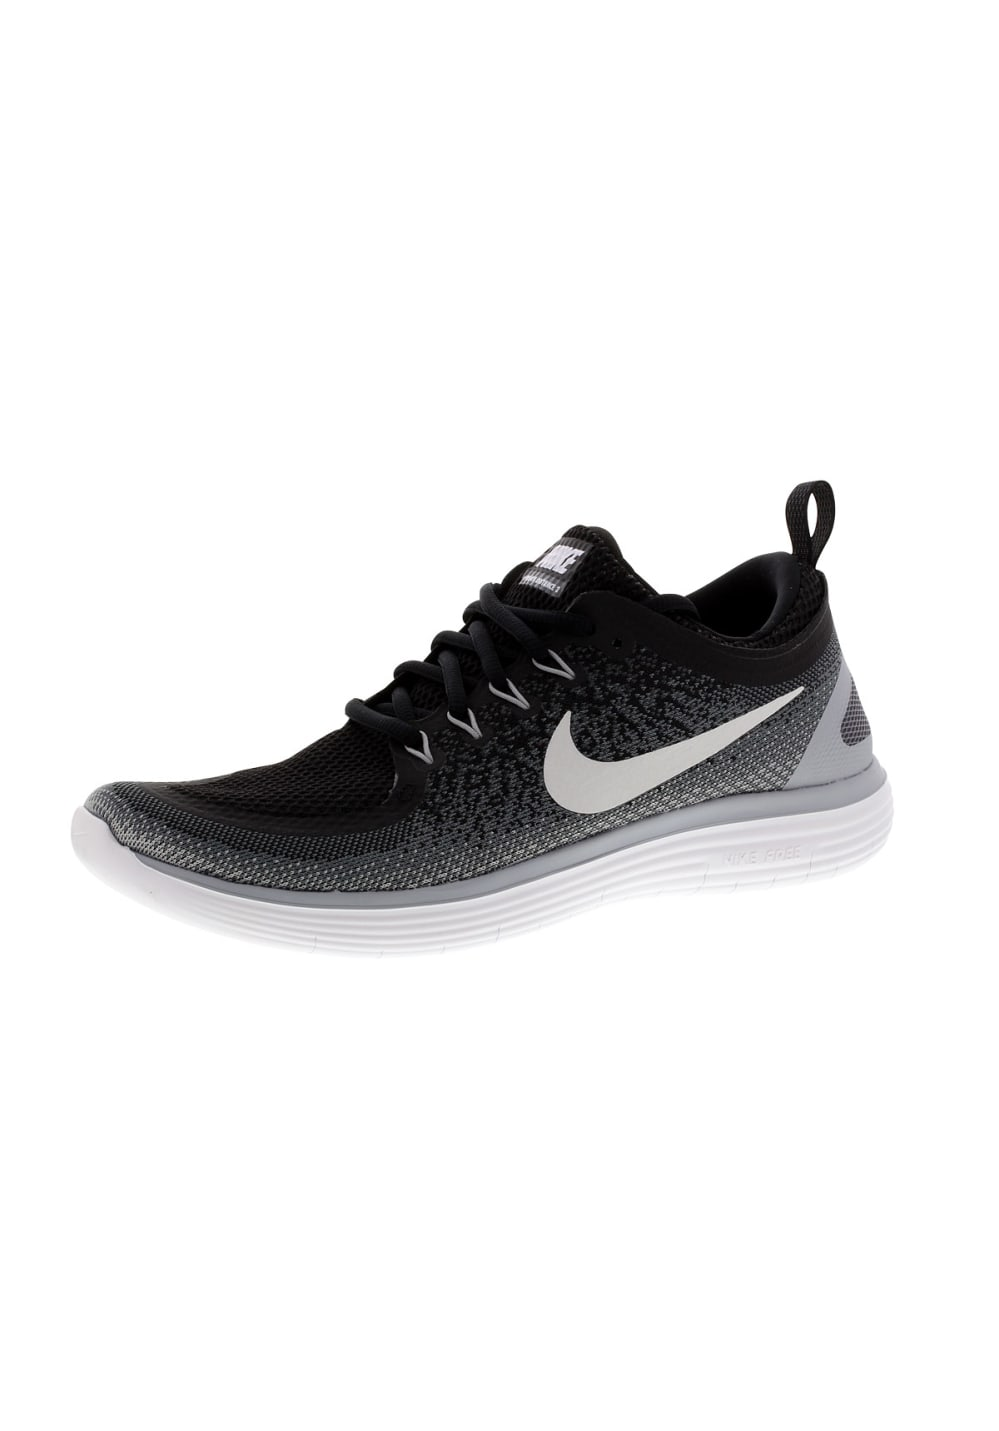 online store 9dc1a 8b49b Nike Free RN Distance 2 - Running shoes for Men - Black